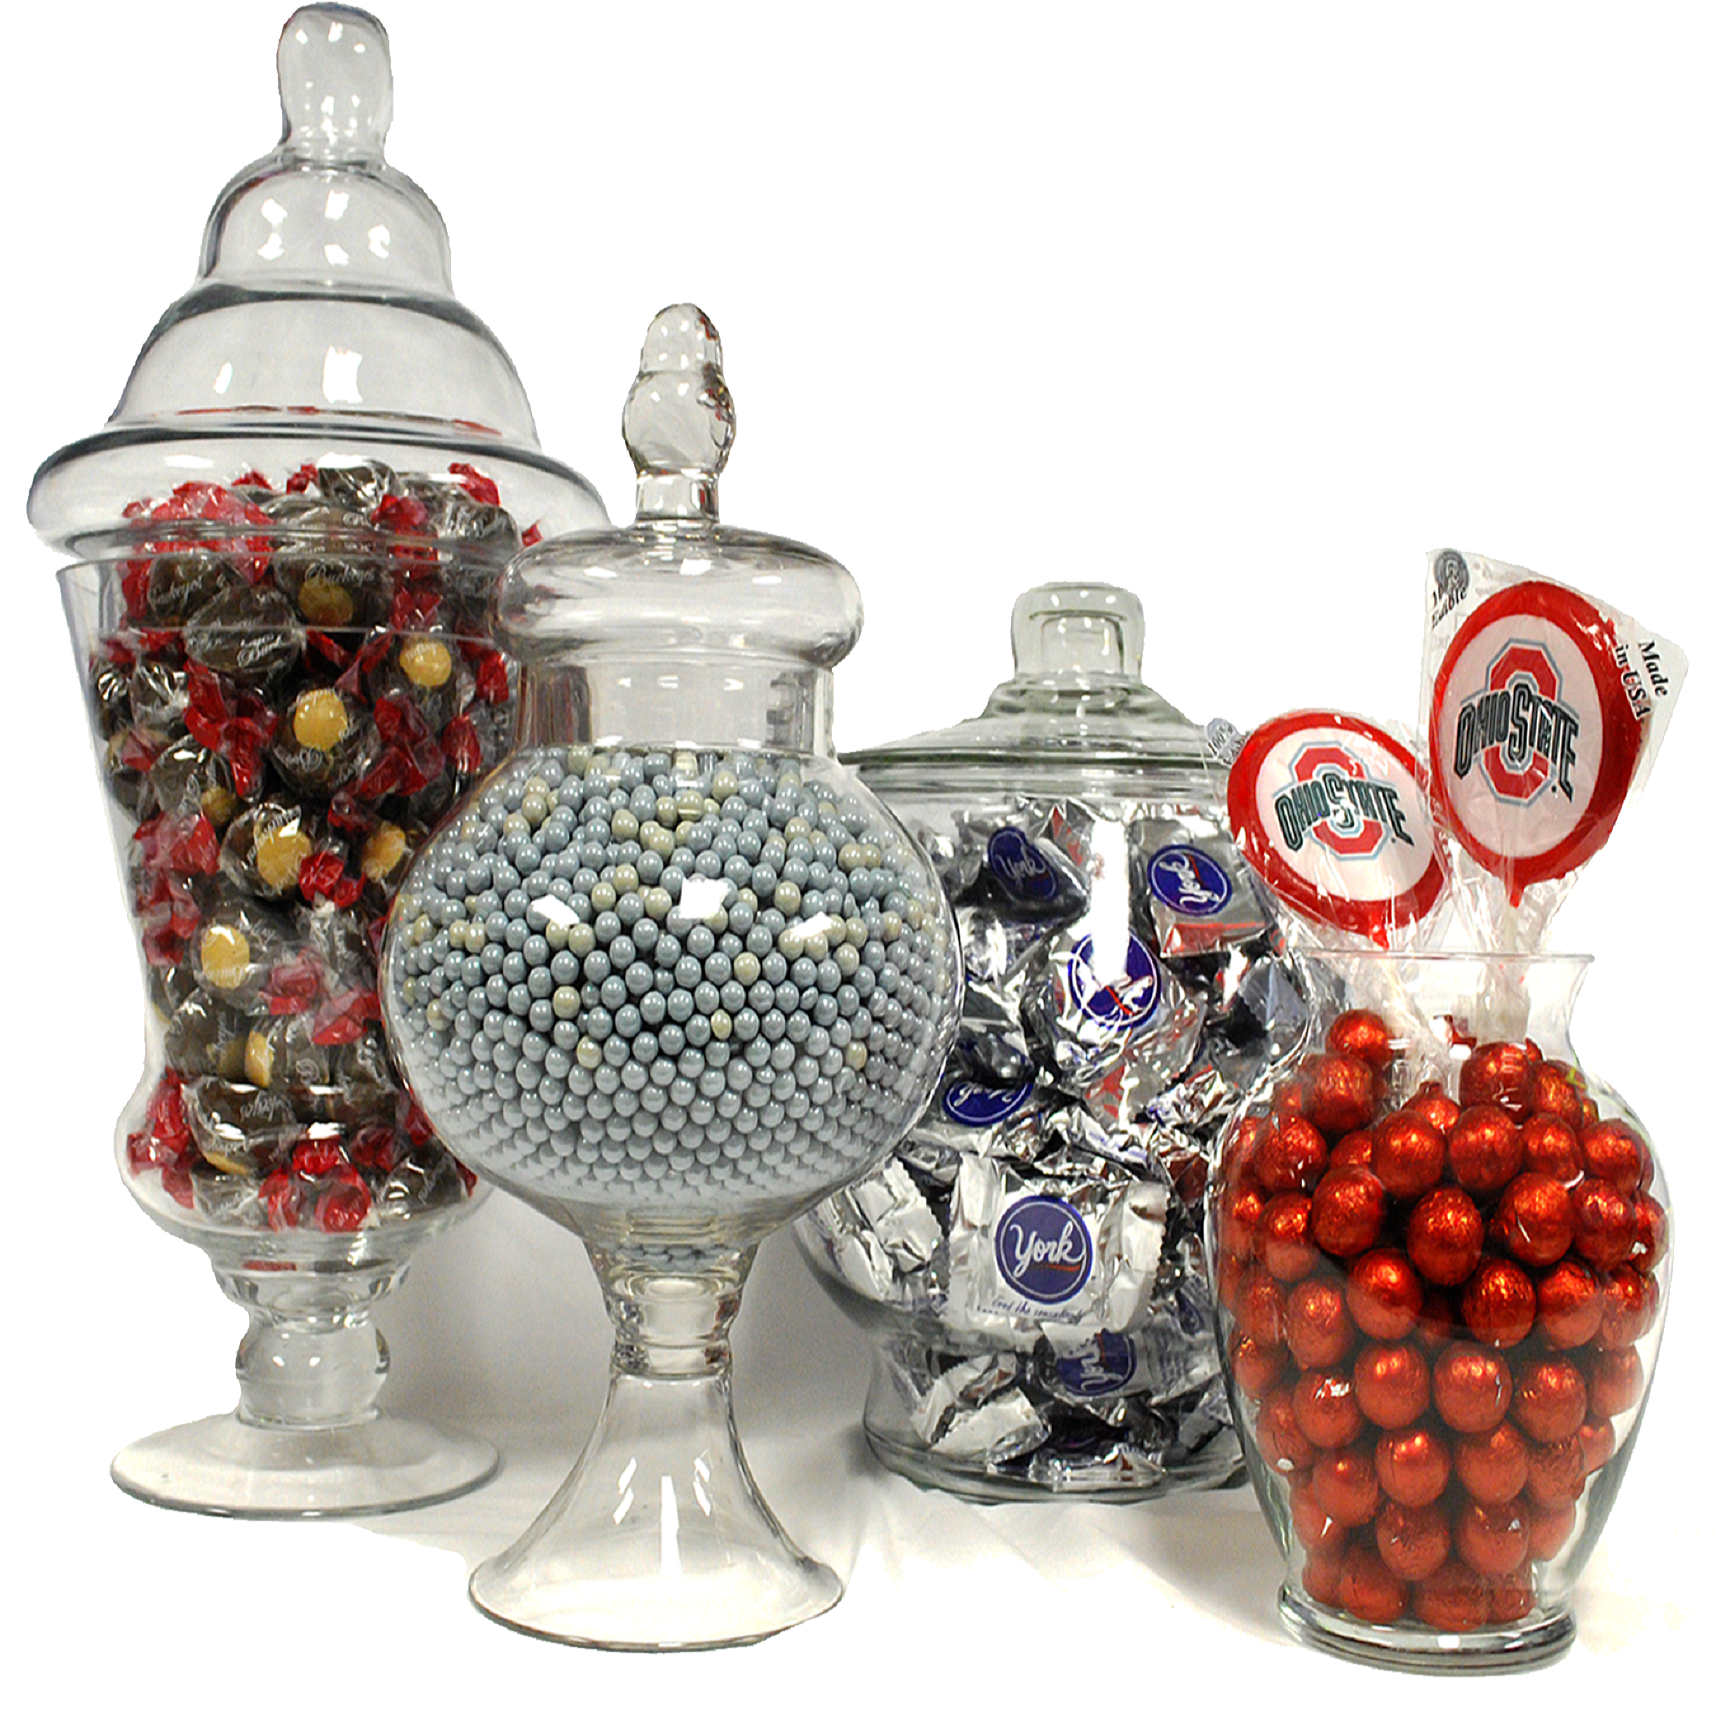 All City Candy is your Candy buffet 